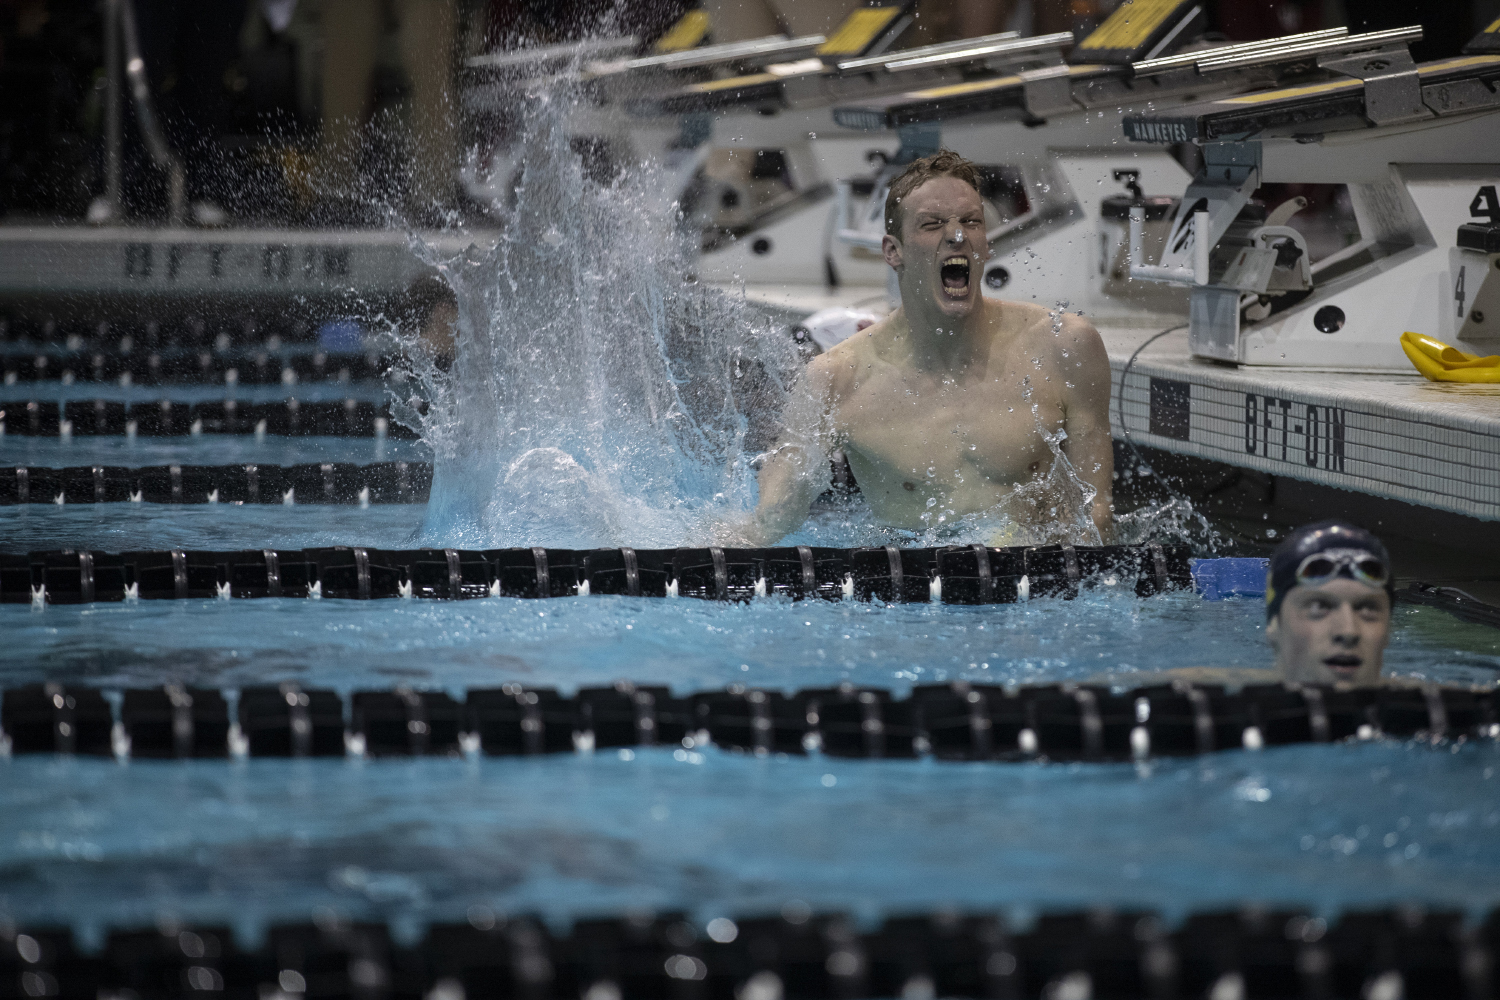 Felix+Auboeck+of+the+University+of+Michigan+celebrates+winning+the+Men%27s+500+freestyle+championships+during+the+second+day+of+the+2019+Big+Ten+Men%27s+Swimming+and+Diving+Championships+at+the+CRWC+on+Thursday%2C+February+28%2C+2019.+Auboeck+won+with+a+time+of+4%3A09%3A47%2C+setting+a+pool+record.+